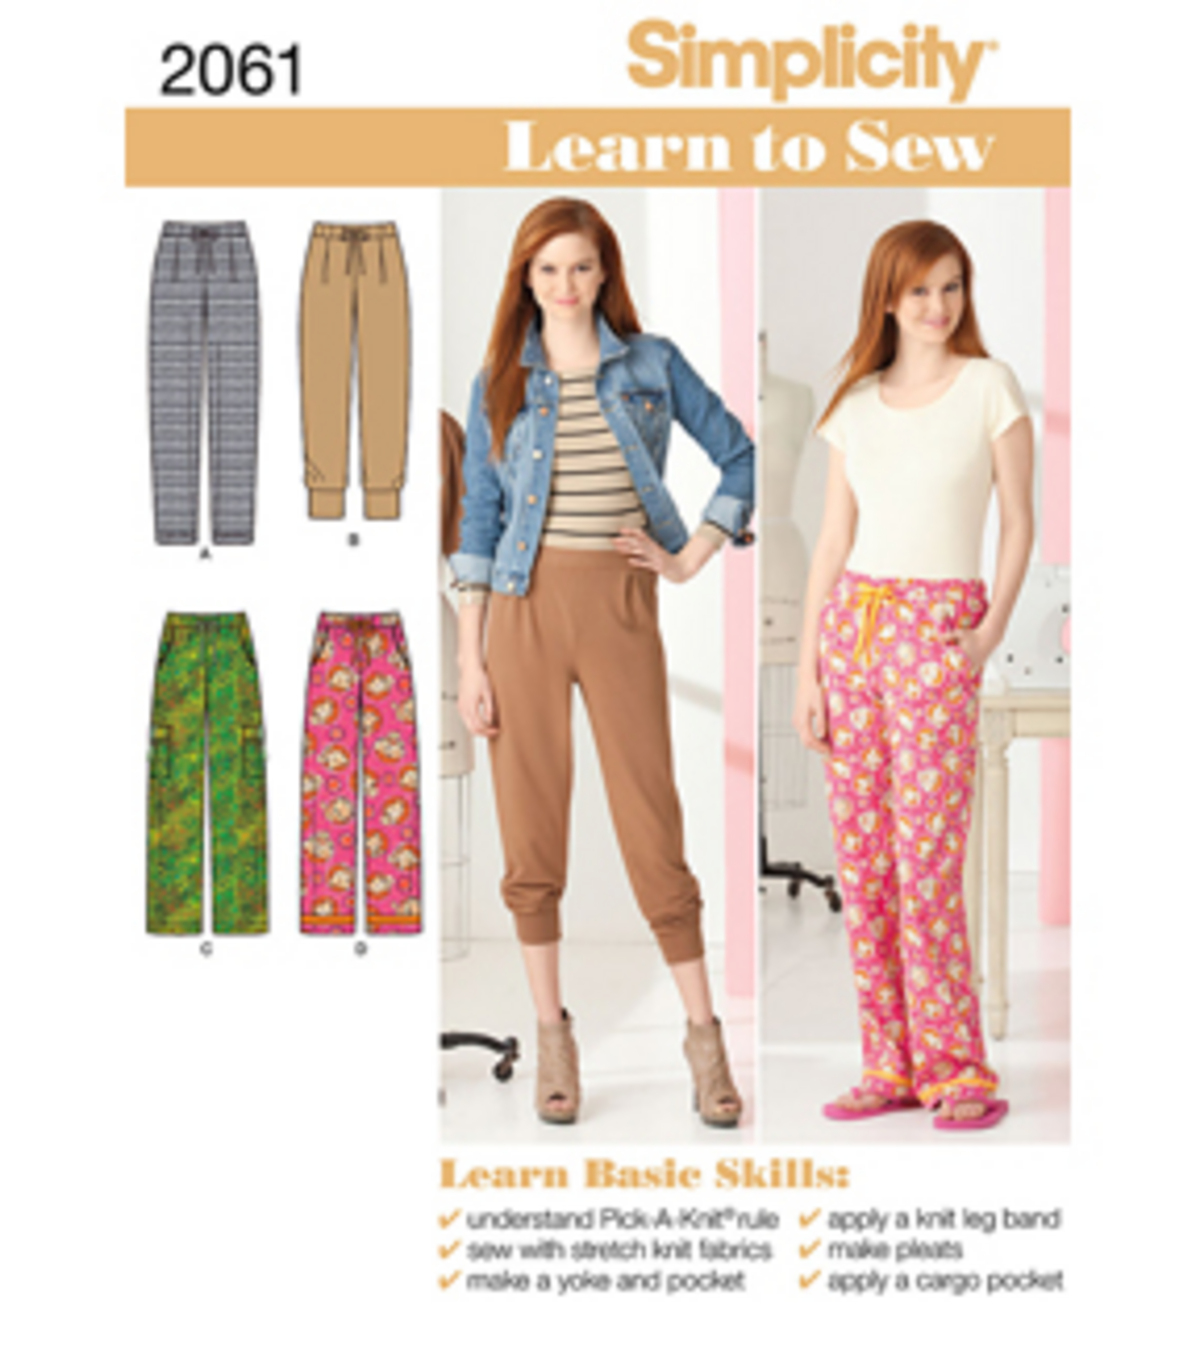 Simplicity Pattern 2061A 6-8-10-12--Simplicity Learn To